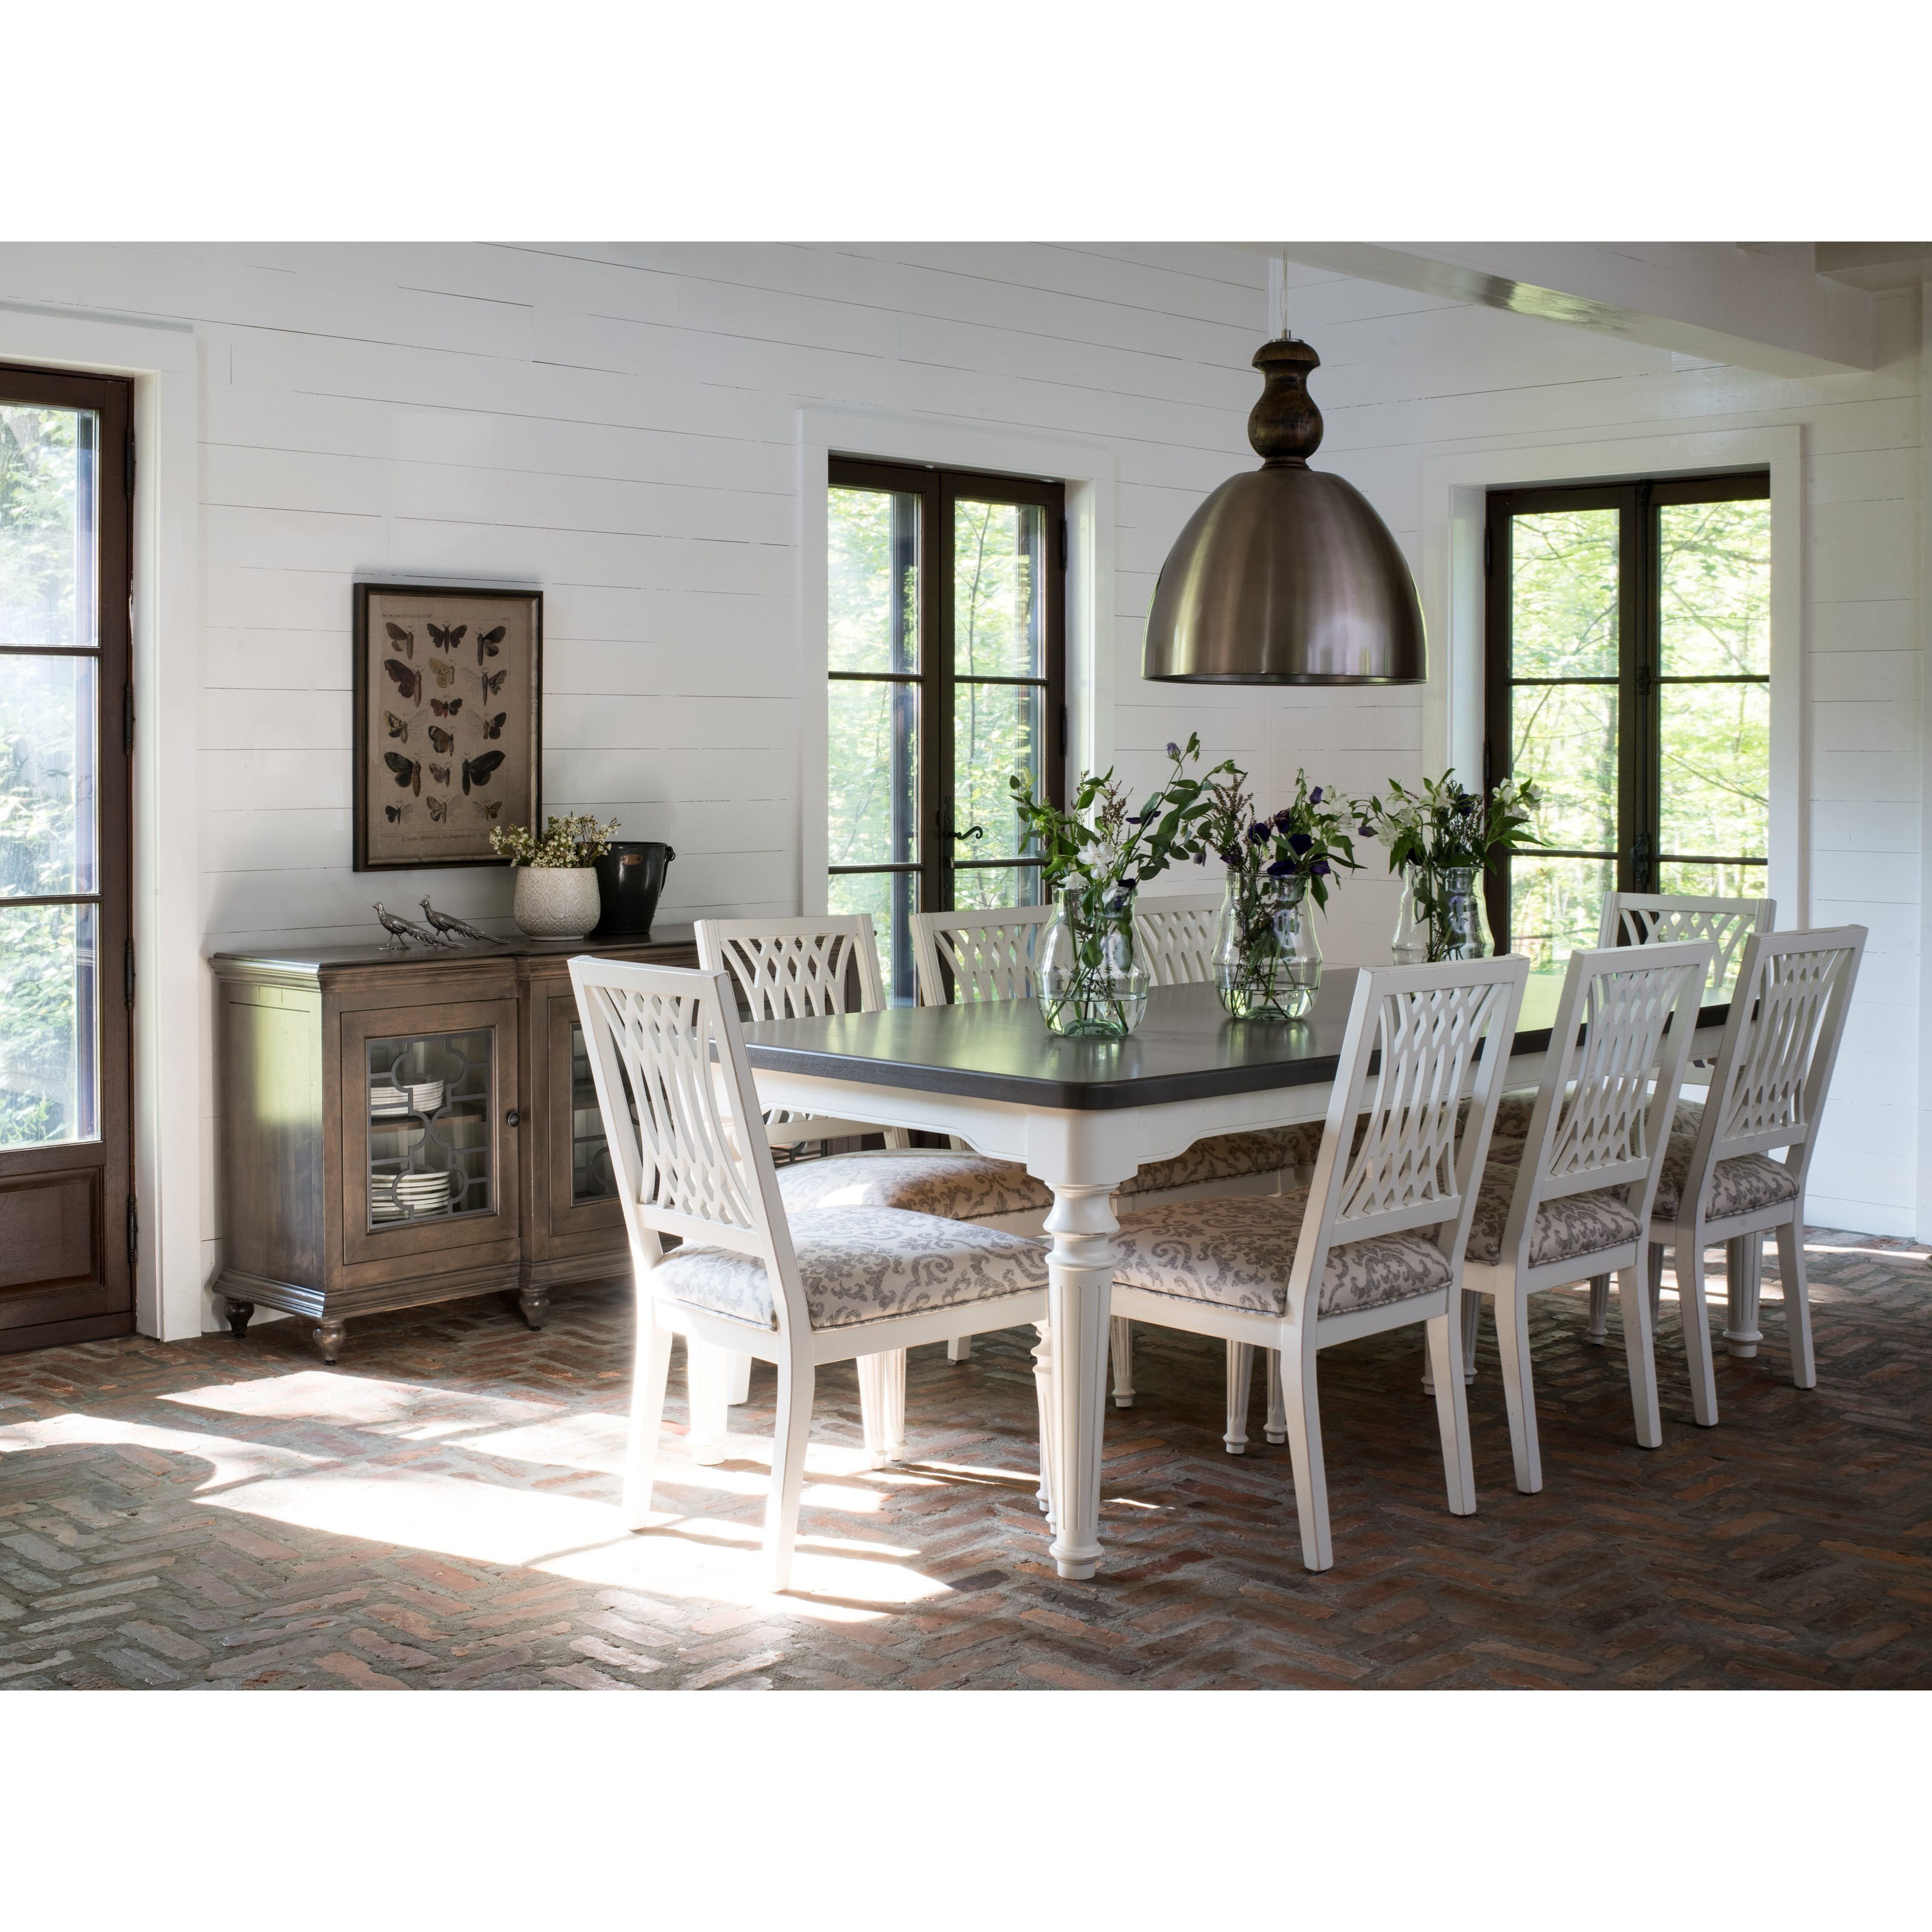 Farmhouse Dining Room Group by Canadel at Steger's Furniture